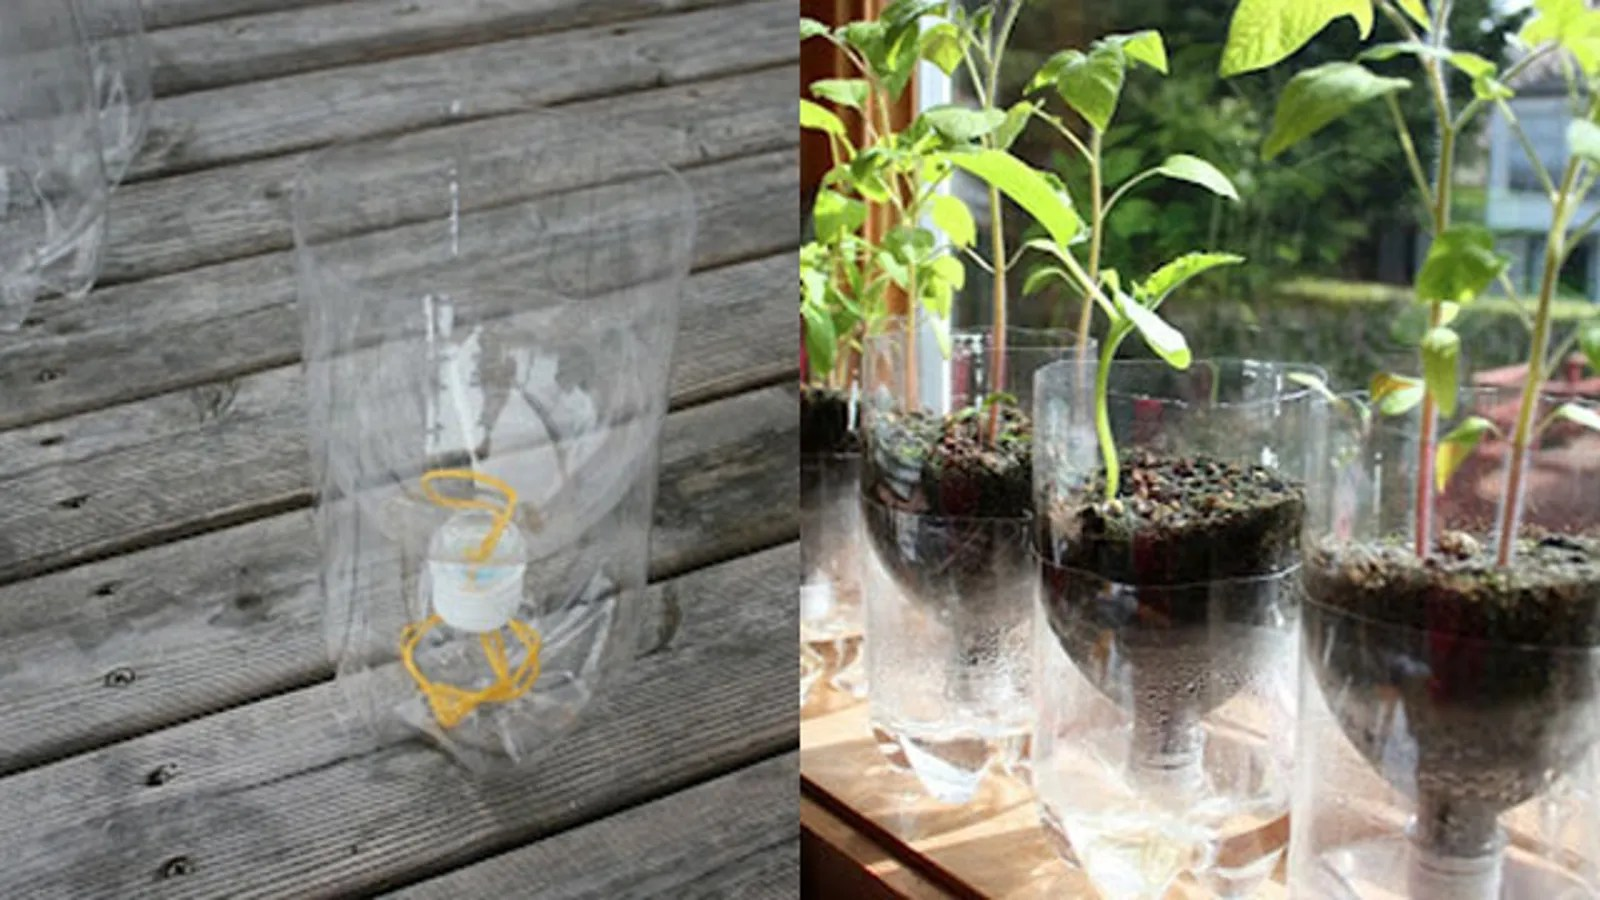 Make Self Watering Planters Turn A Soda Bottle Into A Worry Free Self Watering Planter